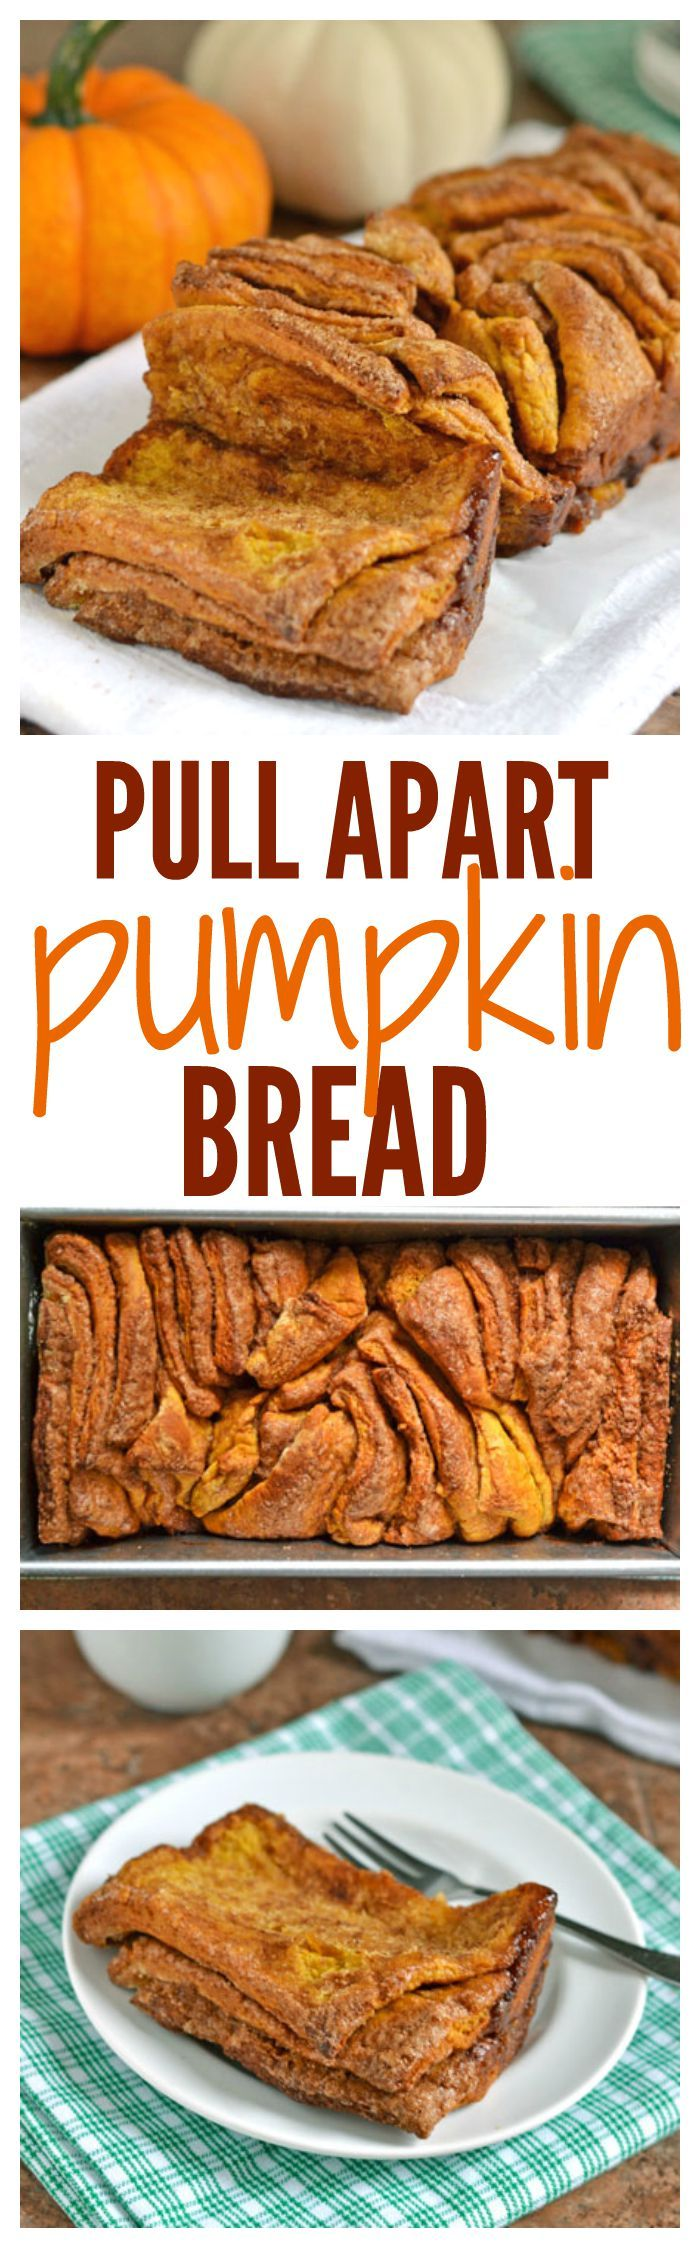 Pumpkin Pull Apart Bread. Every gooey bite is dripping with cinnamon sugar. A must bake for fall and holiday breakfast! Tastes like a pumpkin cinnamon roll, but even better.